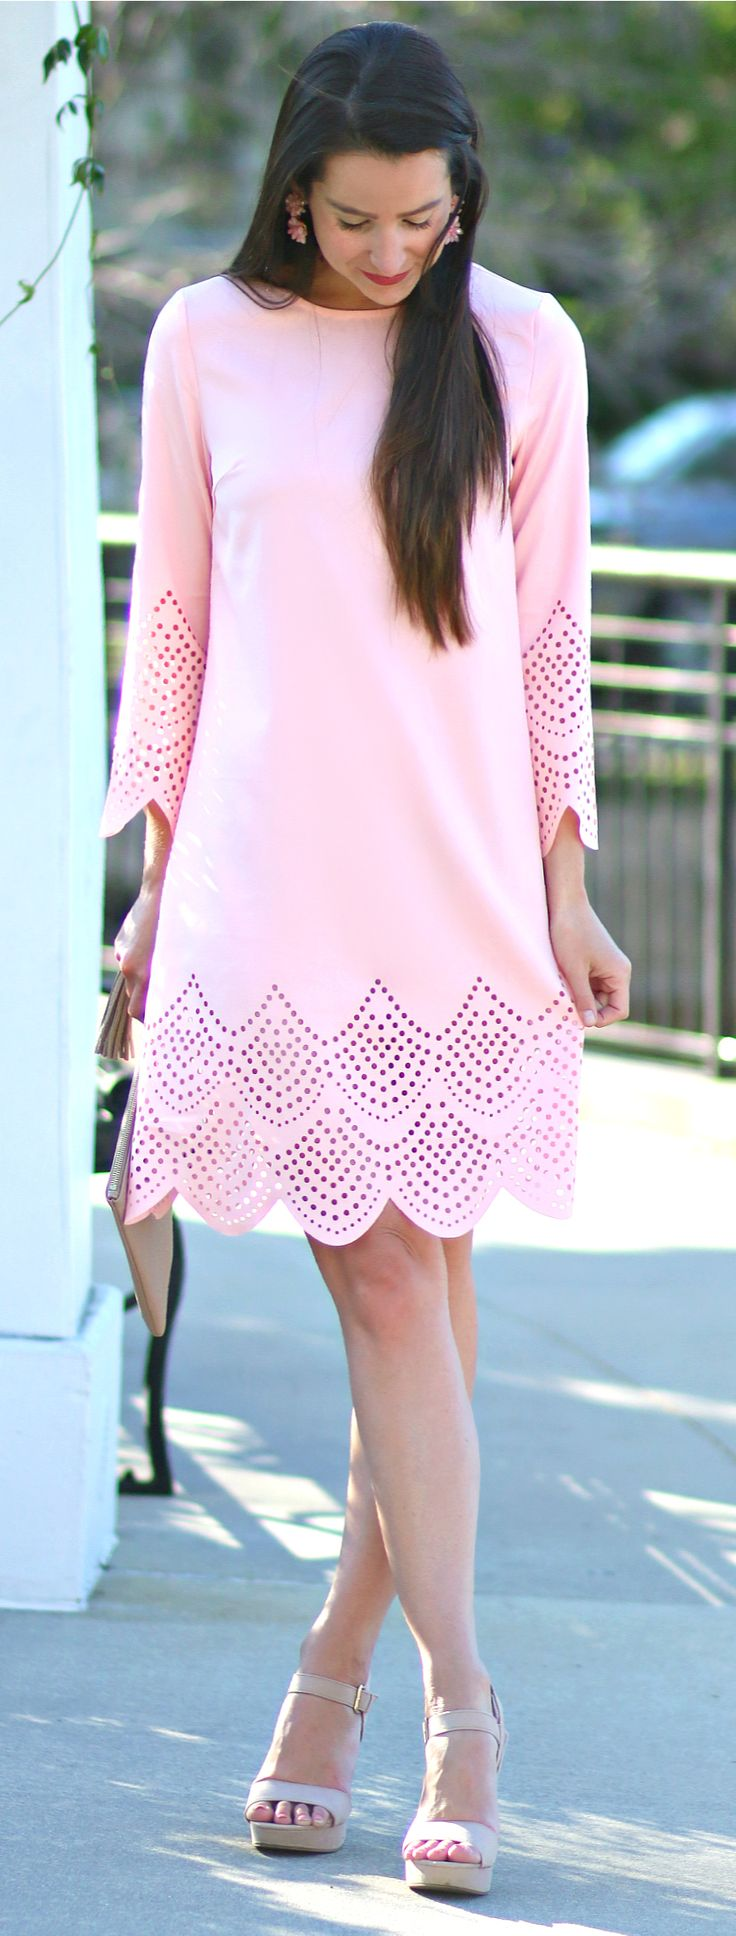 17 best ideas about spring wedding guest dresses on for Dresses for spring wedding guest